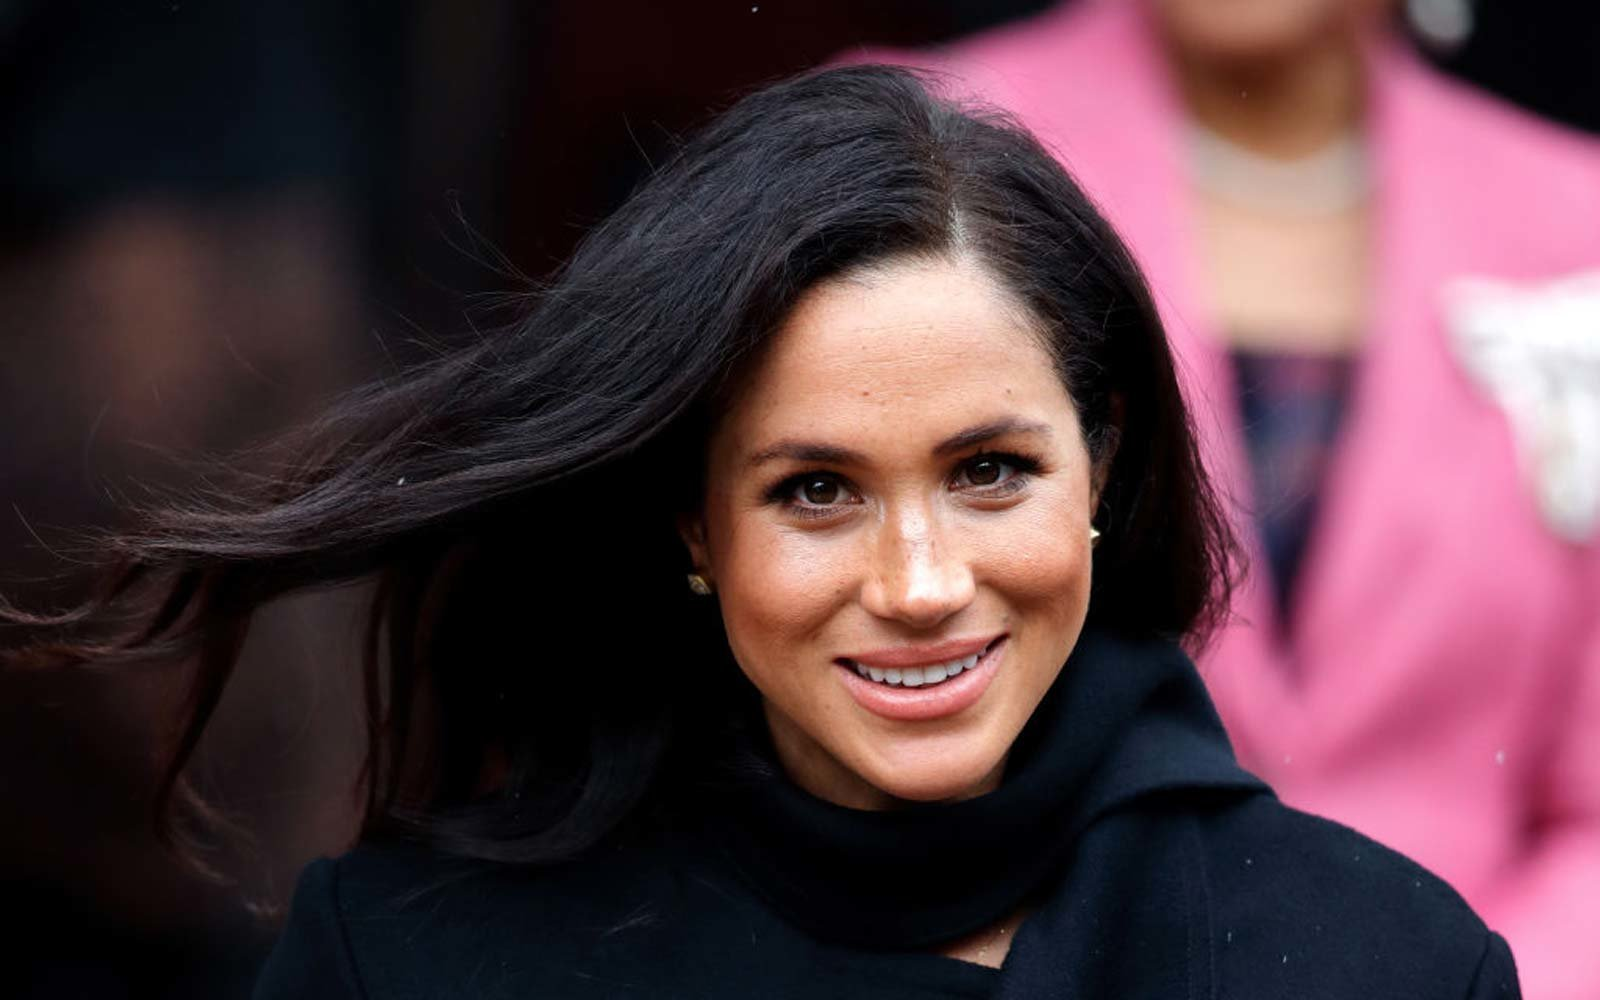 Meghan, Duchess of Sussex departs after visiting the Bristol Old Vic